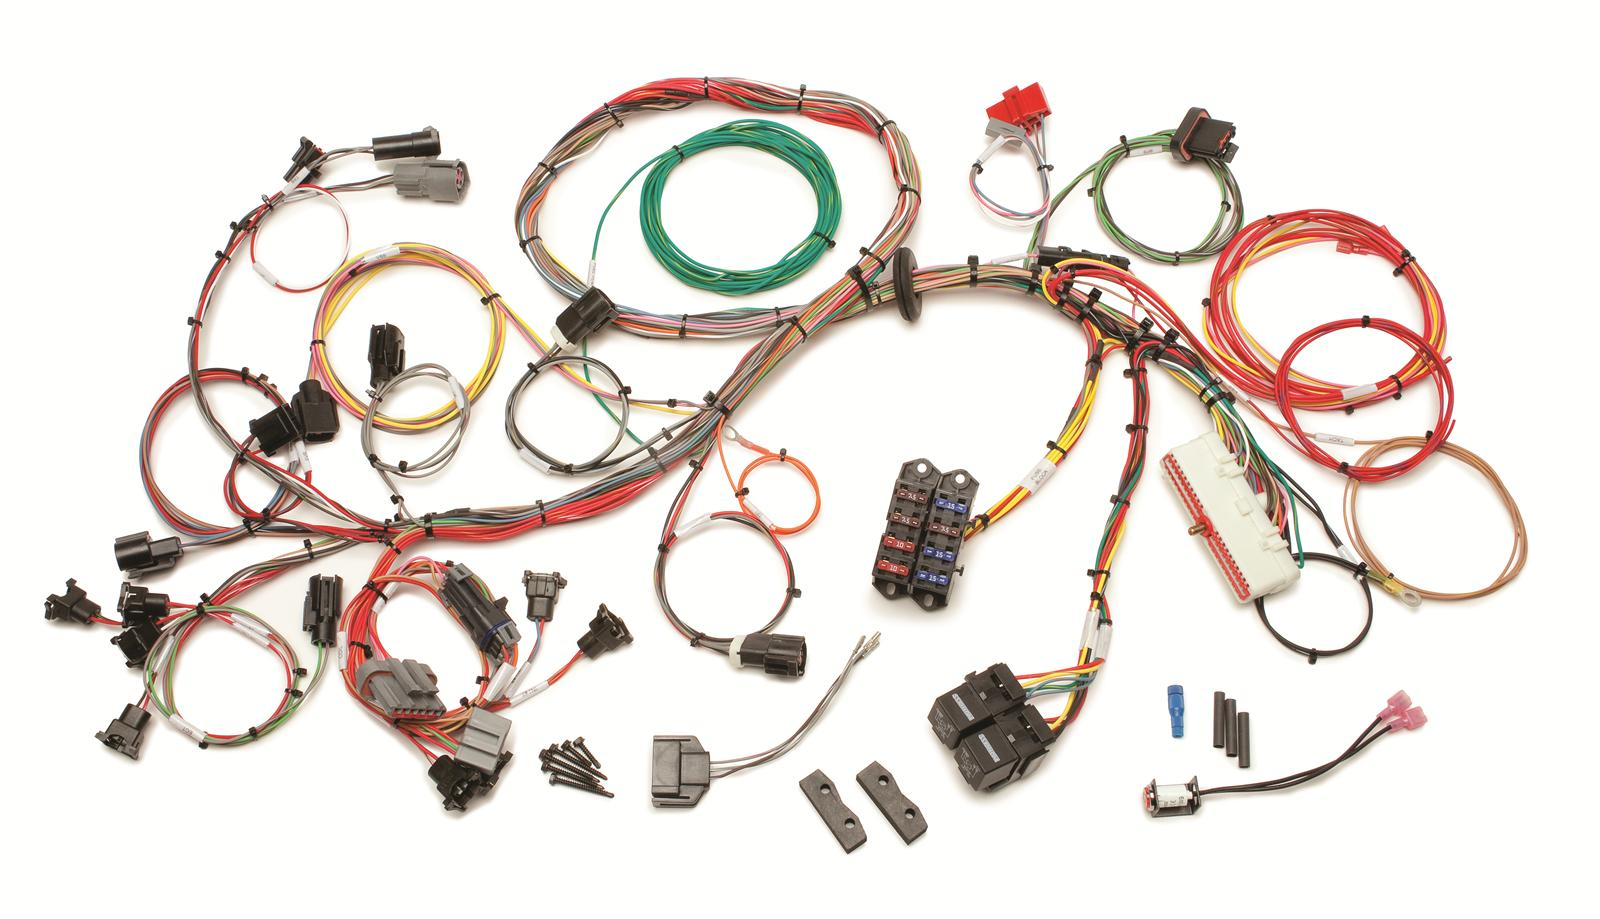 prf 60511_xl painless ford efi wiring harness painless fuse box wiring diagram rjm injection wiring harness at gsmportal.co